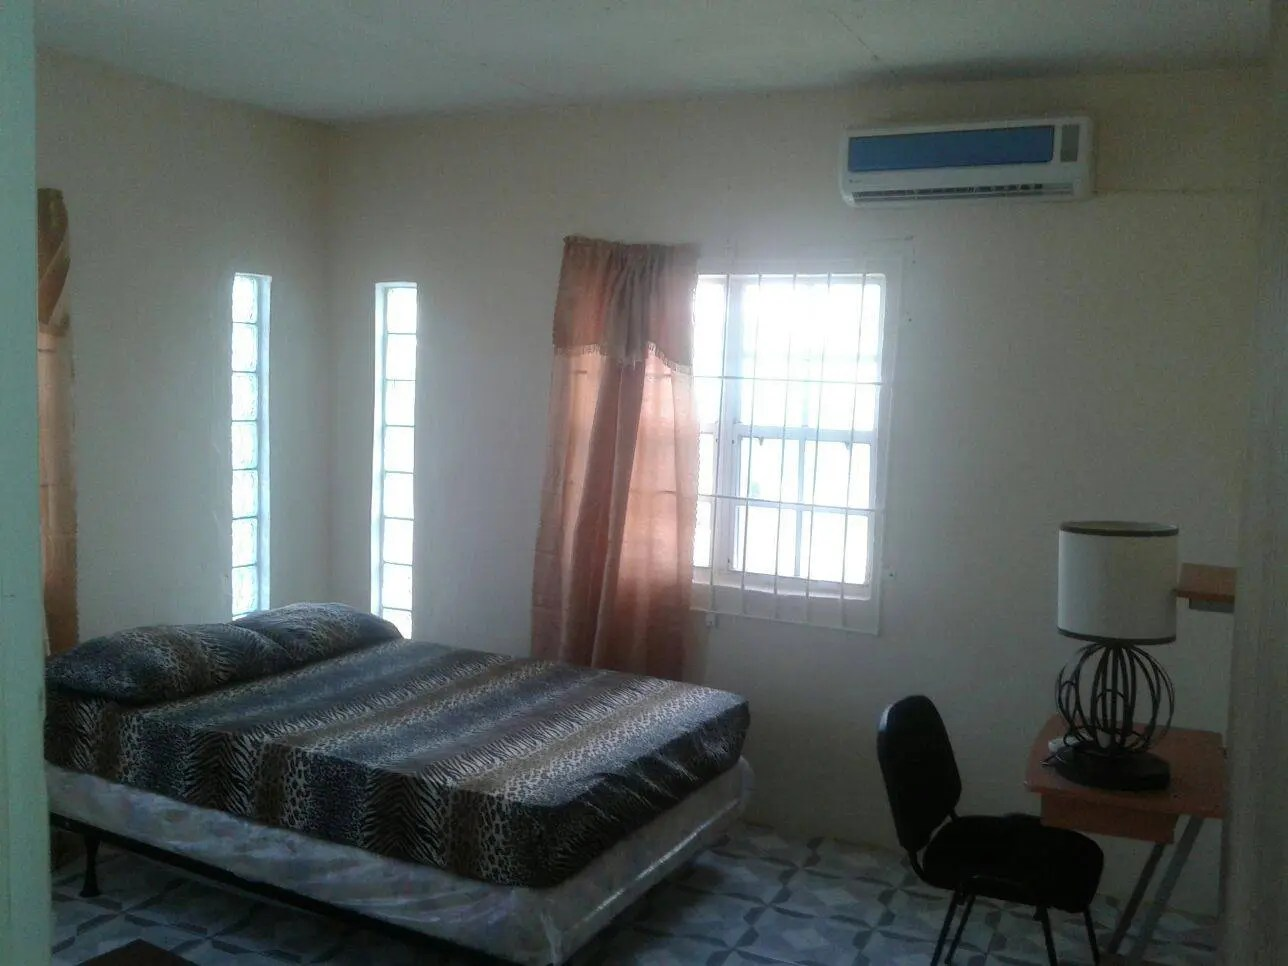 2 bedroom apartment for rent near windsor university st - 2 bedroom apartment for rent near me ...